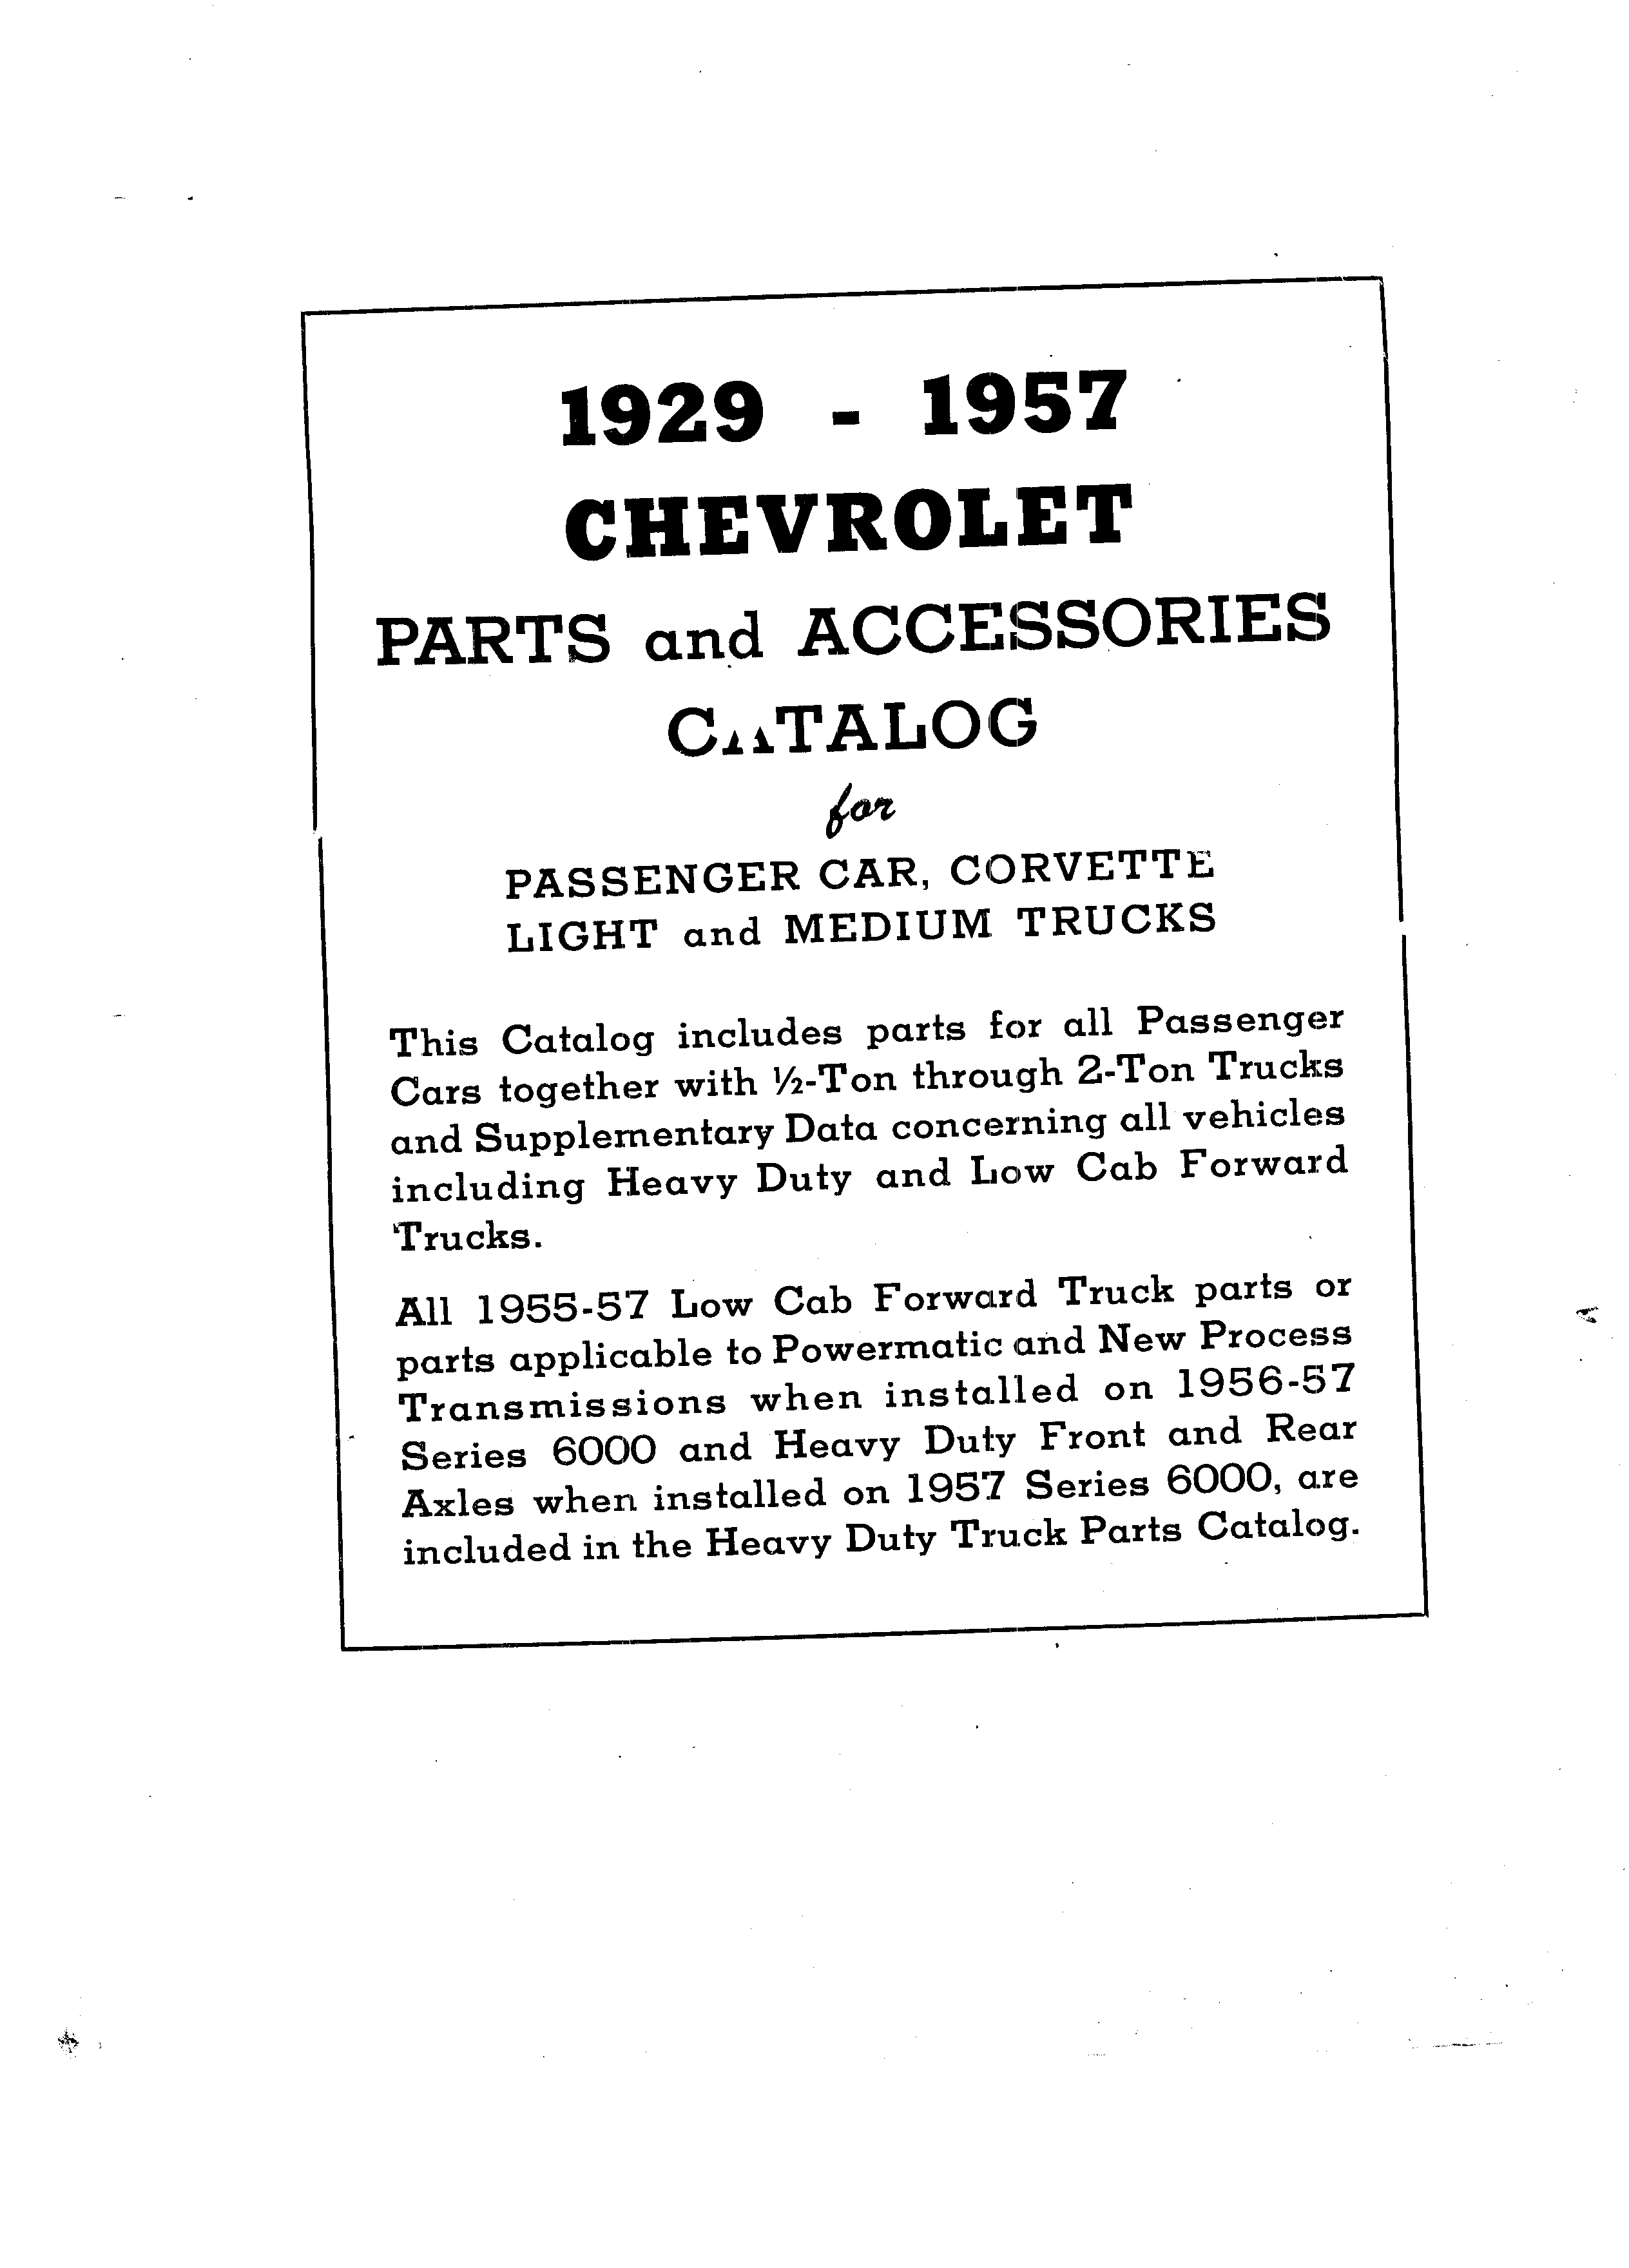 Parts and Accessories Catalog P&A 30 March 1957